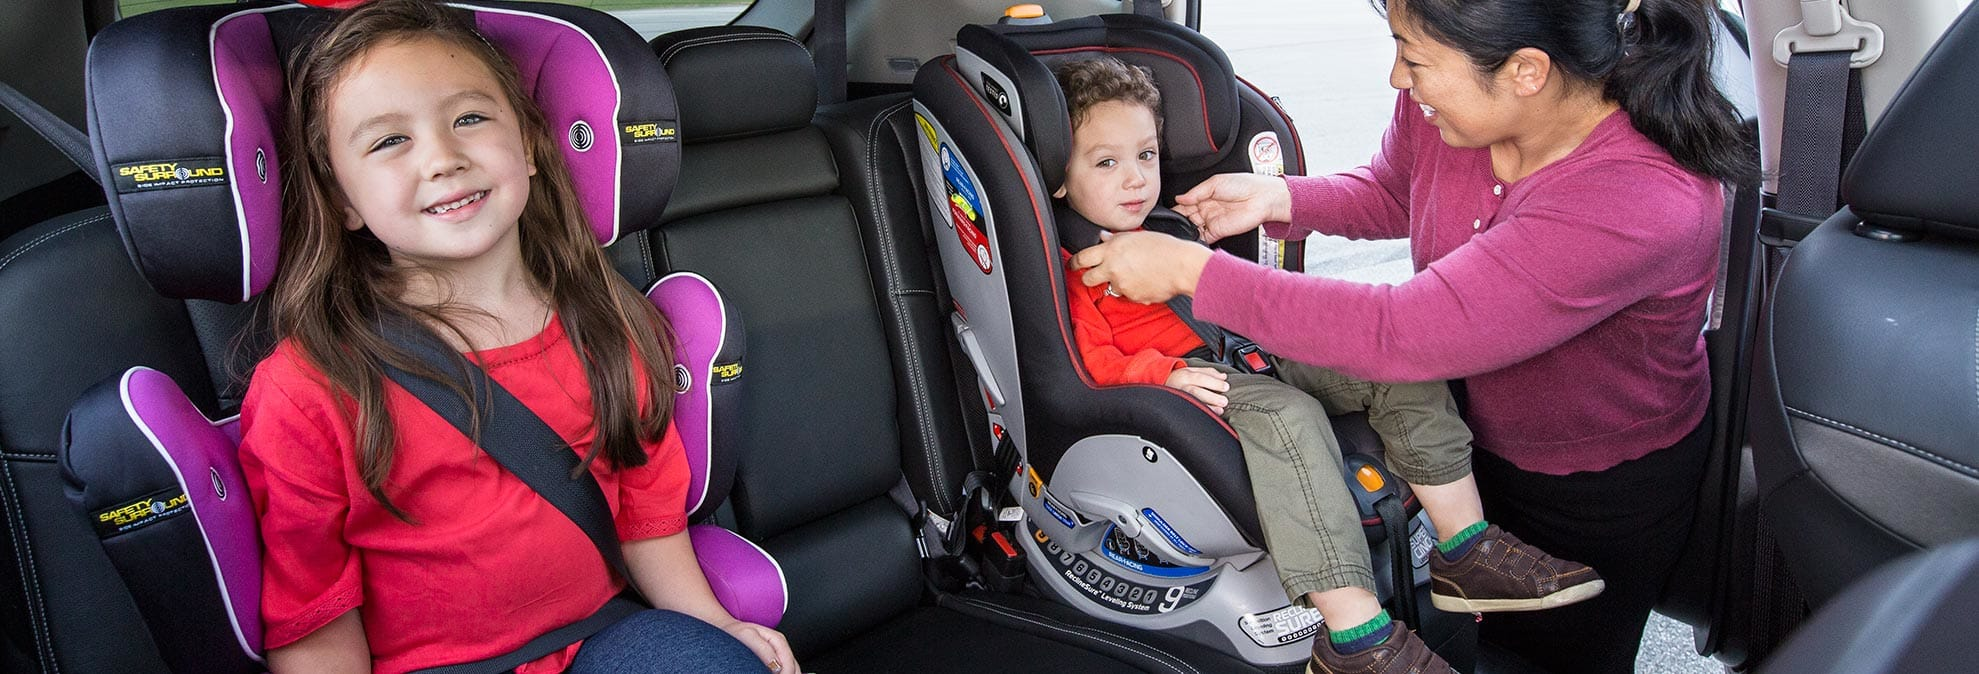 Infant Car Seat Insert Aolvo Convertible Baby Child Safety Booster Pad Cushion Portable Seats For Kids Support